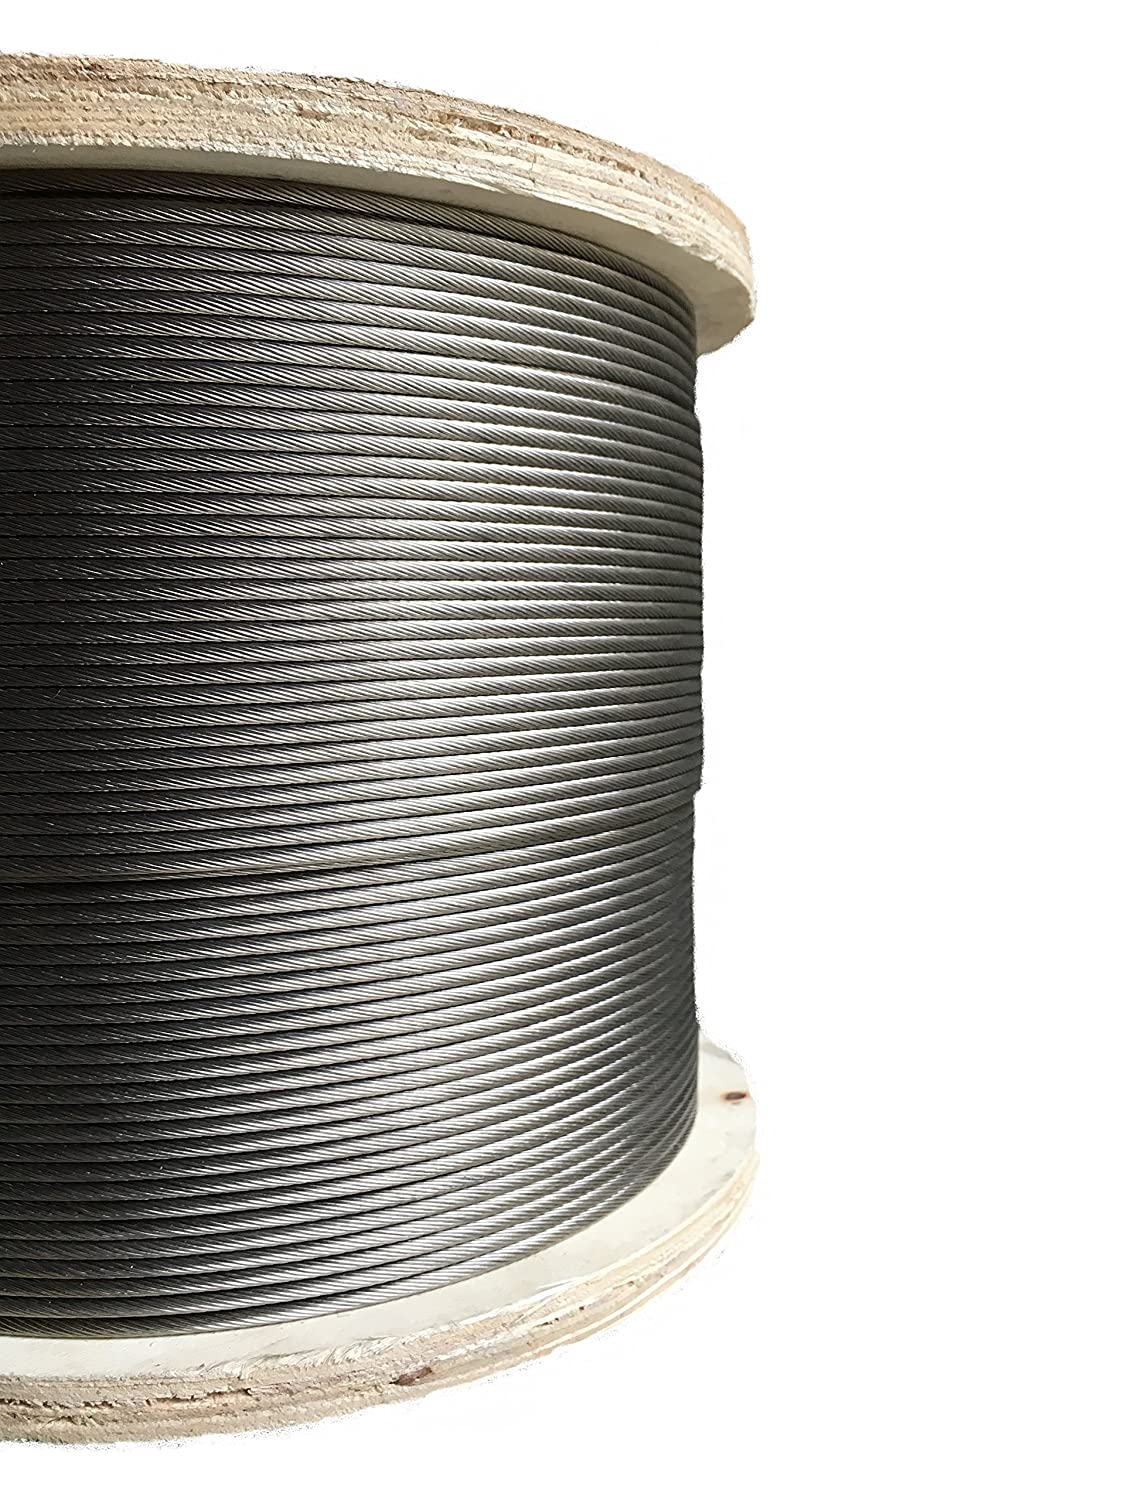 Image of Stainless Steel Aircraft Cable 1/8' 1x19 Type 316 Marine Grade 500ft Cable & Wire Rope